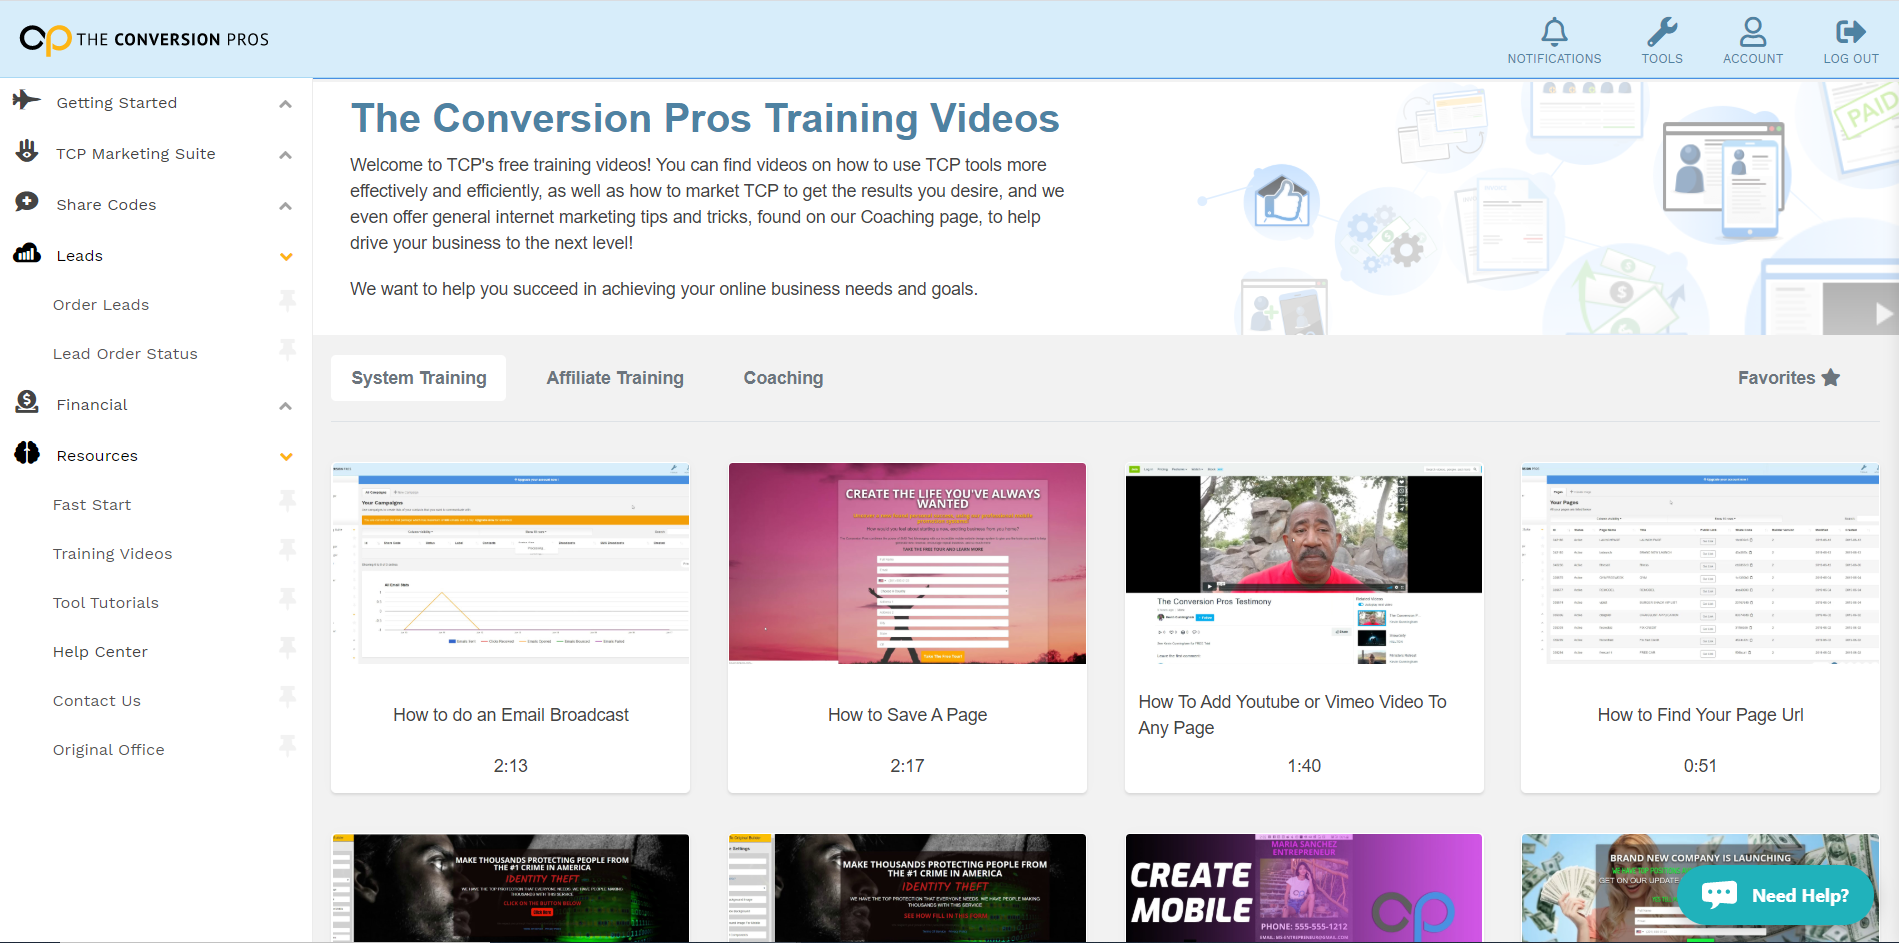 The Conversion Pros Training videos